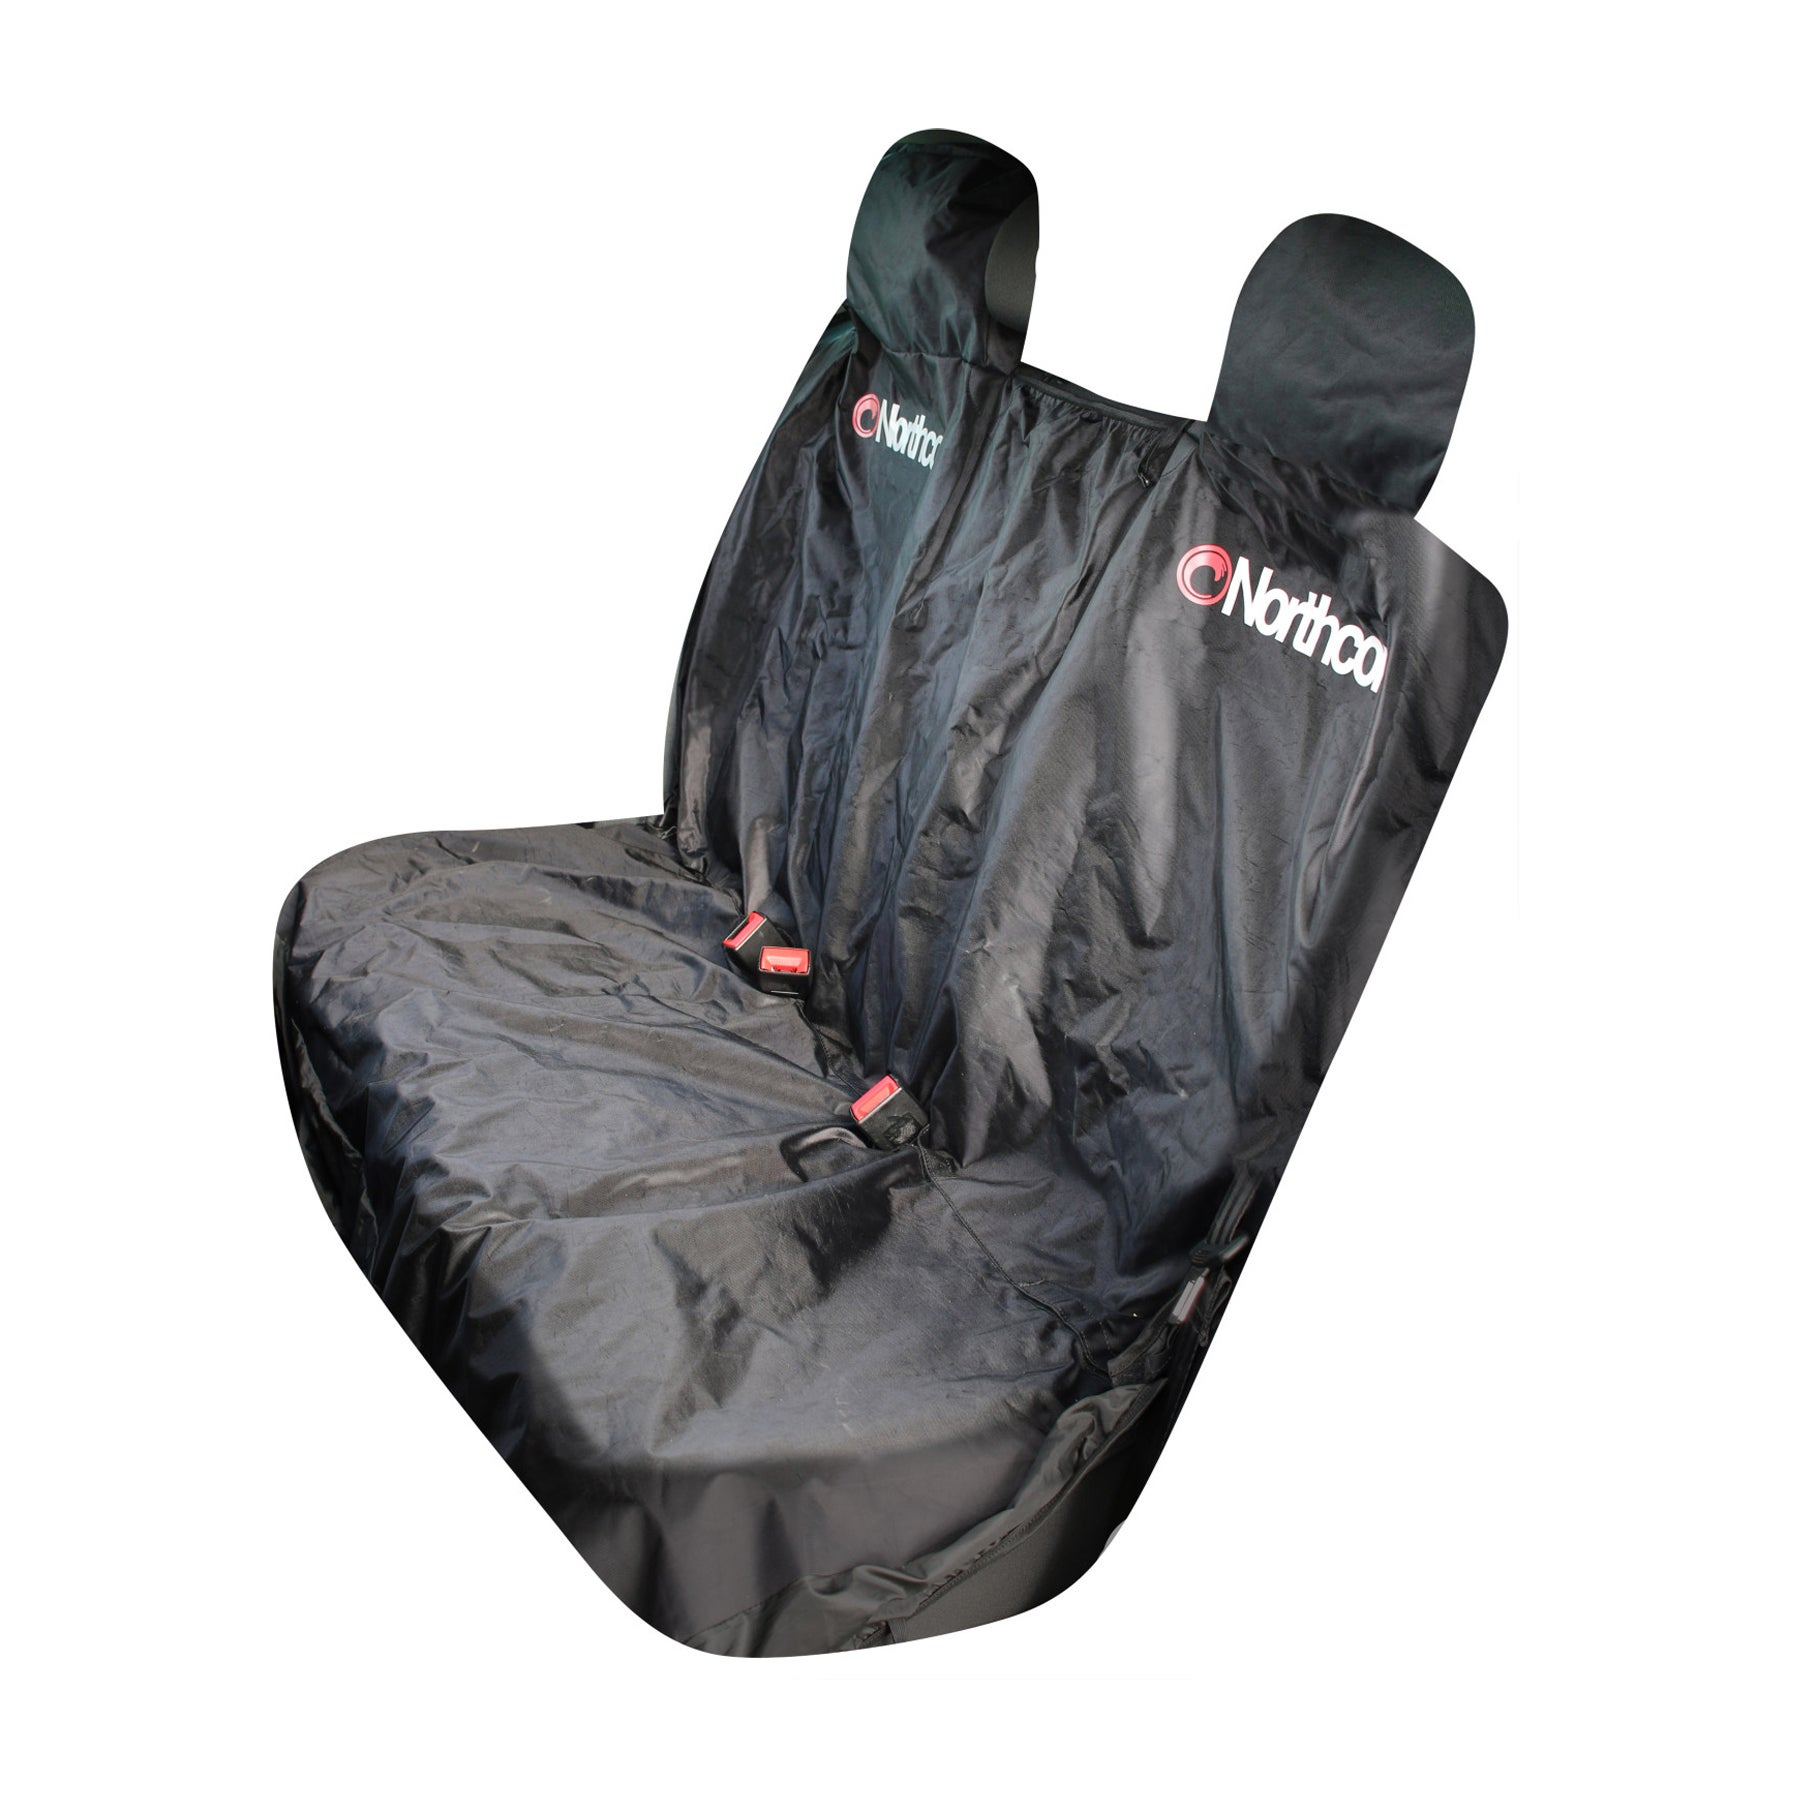 Northcore Triple Rear Car Seat Cover - Black